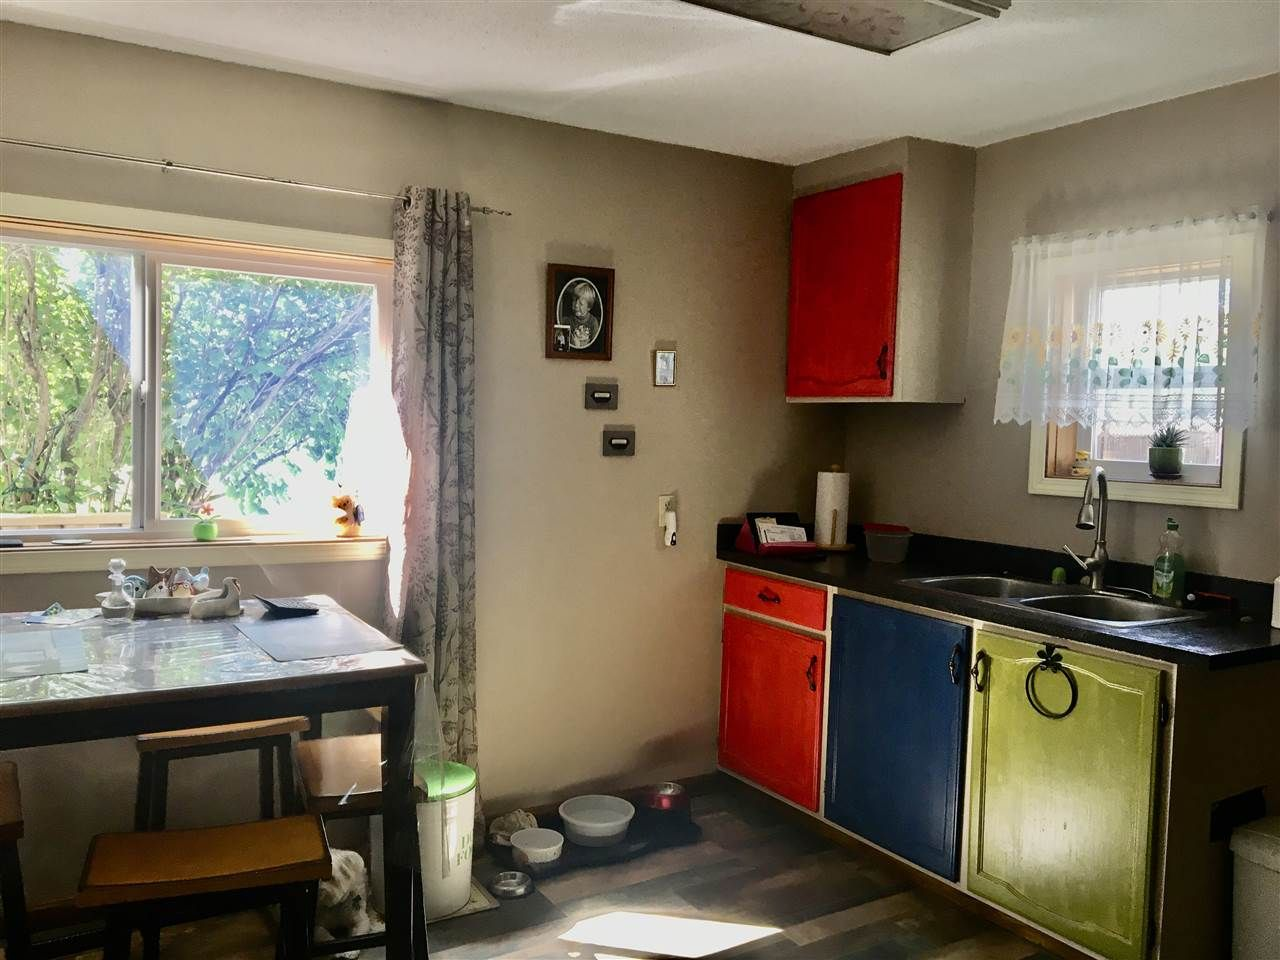 Photo 12: Photos: 230 BAKER Drive in Quesnel: Quesnel - Town House for sale (Quesnel (Zone 28))  : MLS®# R2481471